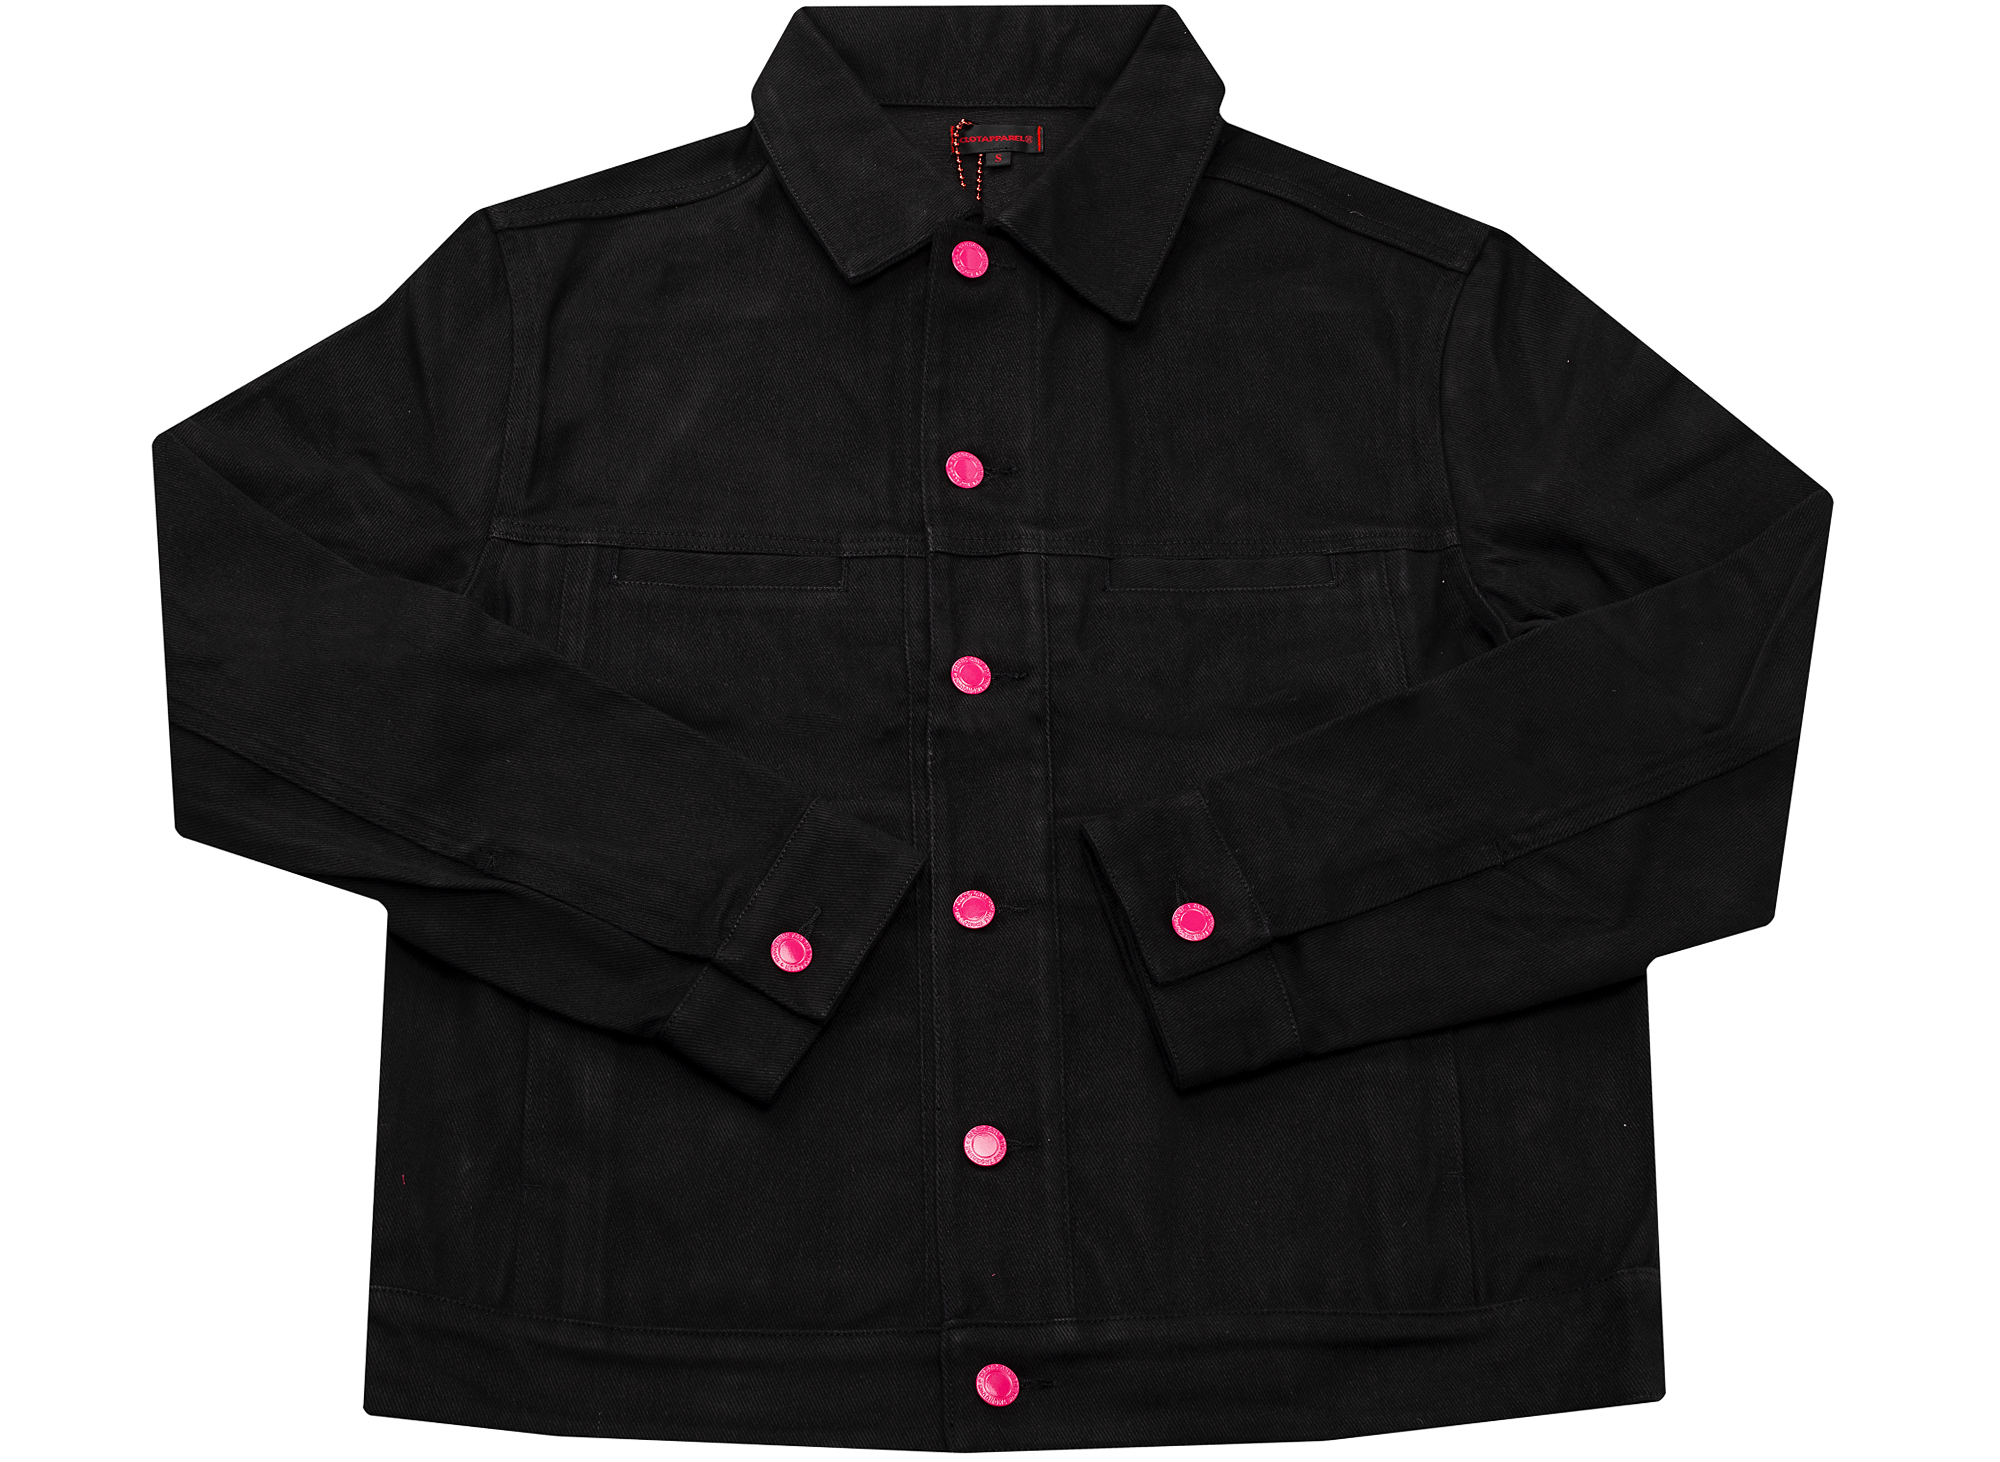 Clot Alien Among Us Trucker Jacket